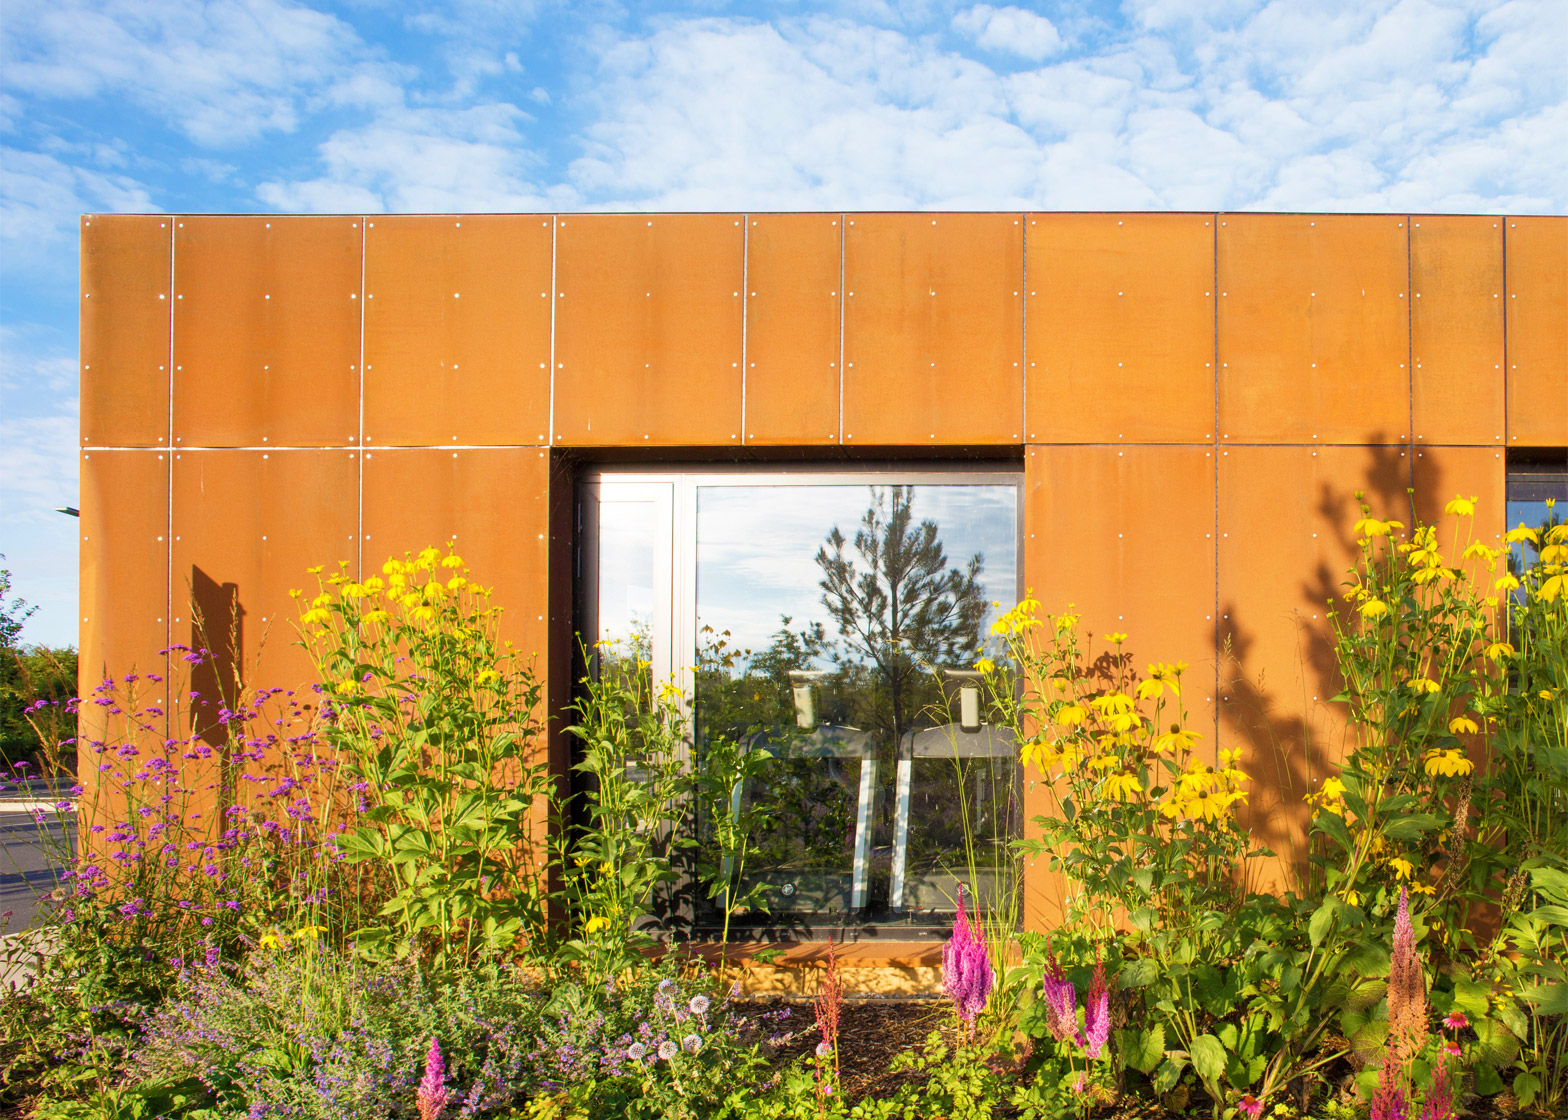 nenagh-leisure-centre-town-park-abk-architects-county-tipperary-ireland-swimming-pool_dezeen_1568_1